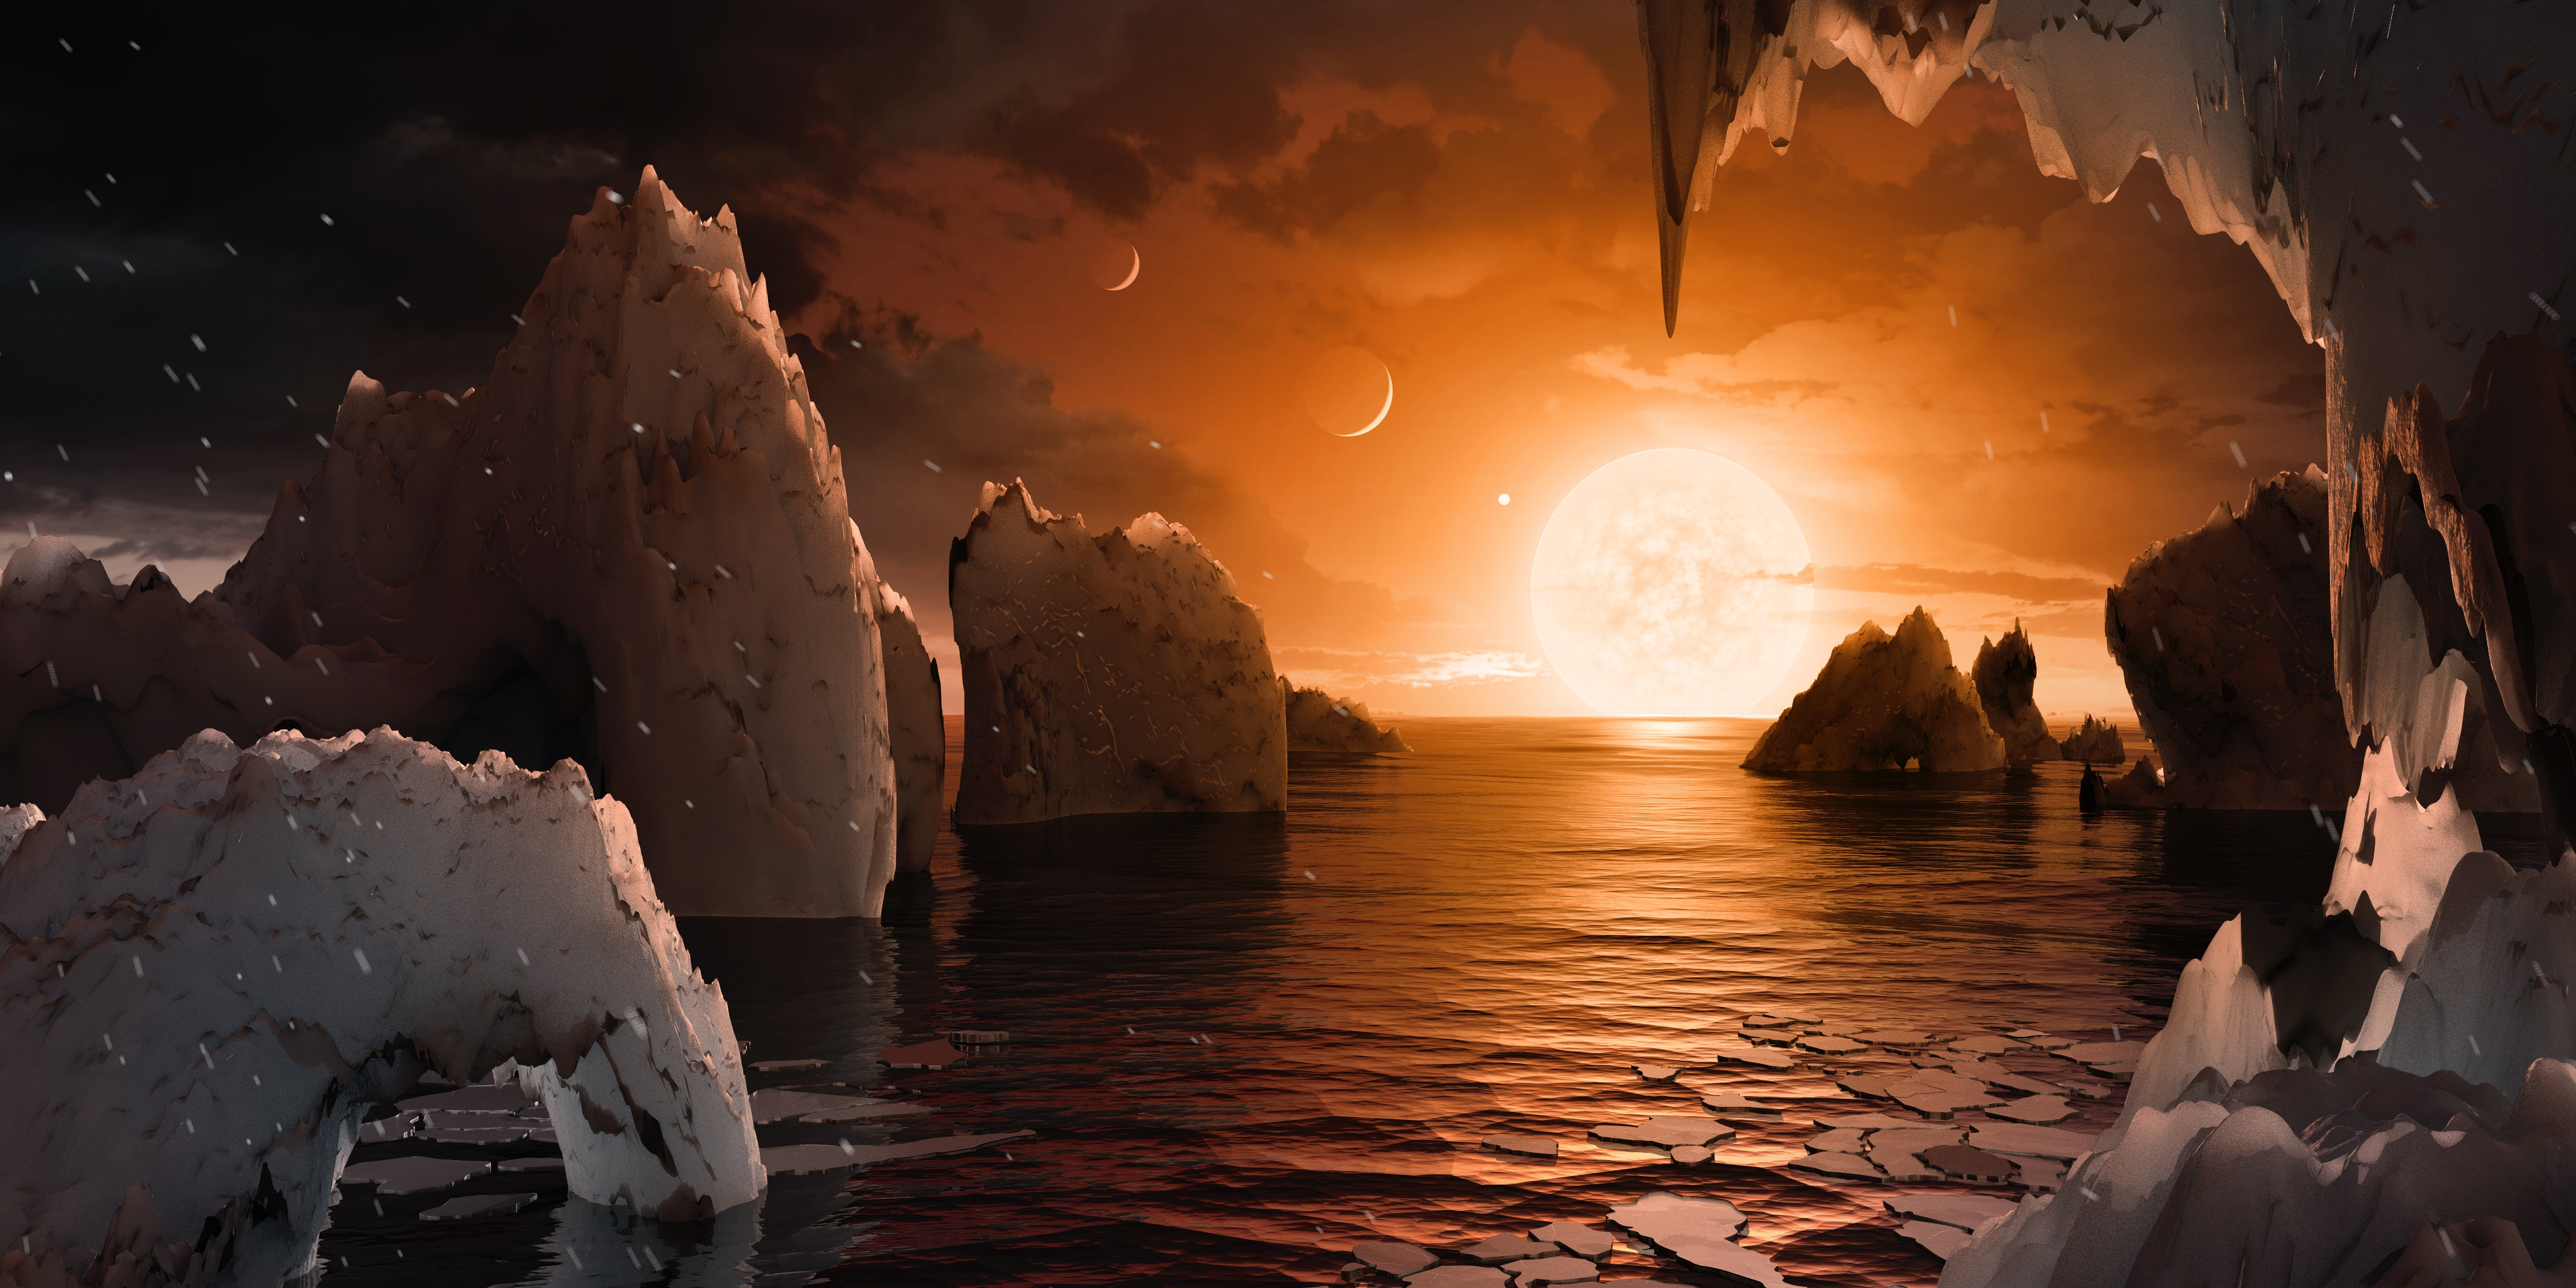 Astronomers Discover 7 Earth-Sized Planets 40 Light-Years Away